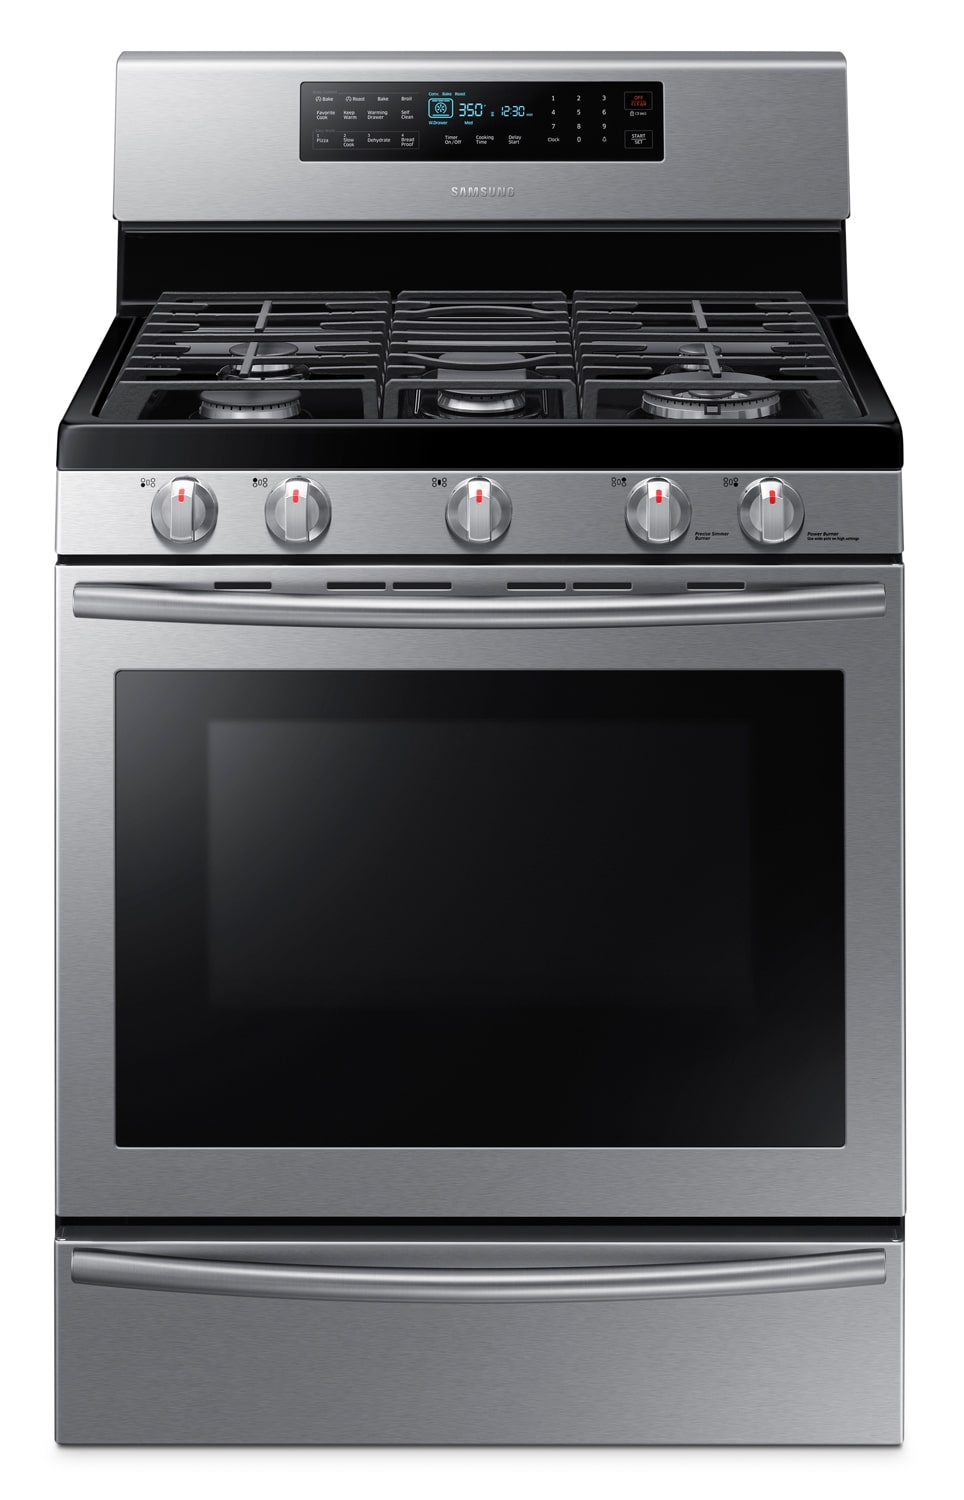 Samsung Stainless Steel Freestanding Gas Range (5.8 Cu. Ft.) - NX58H5650WS